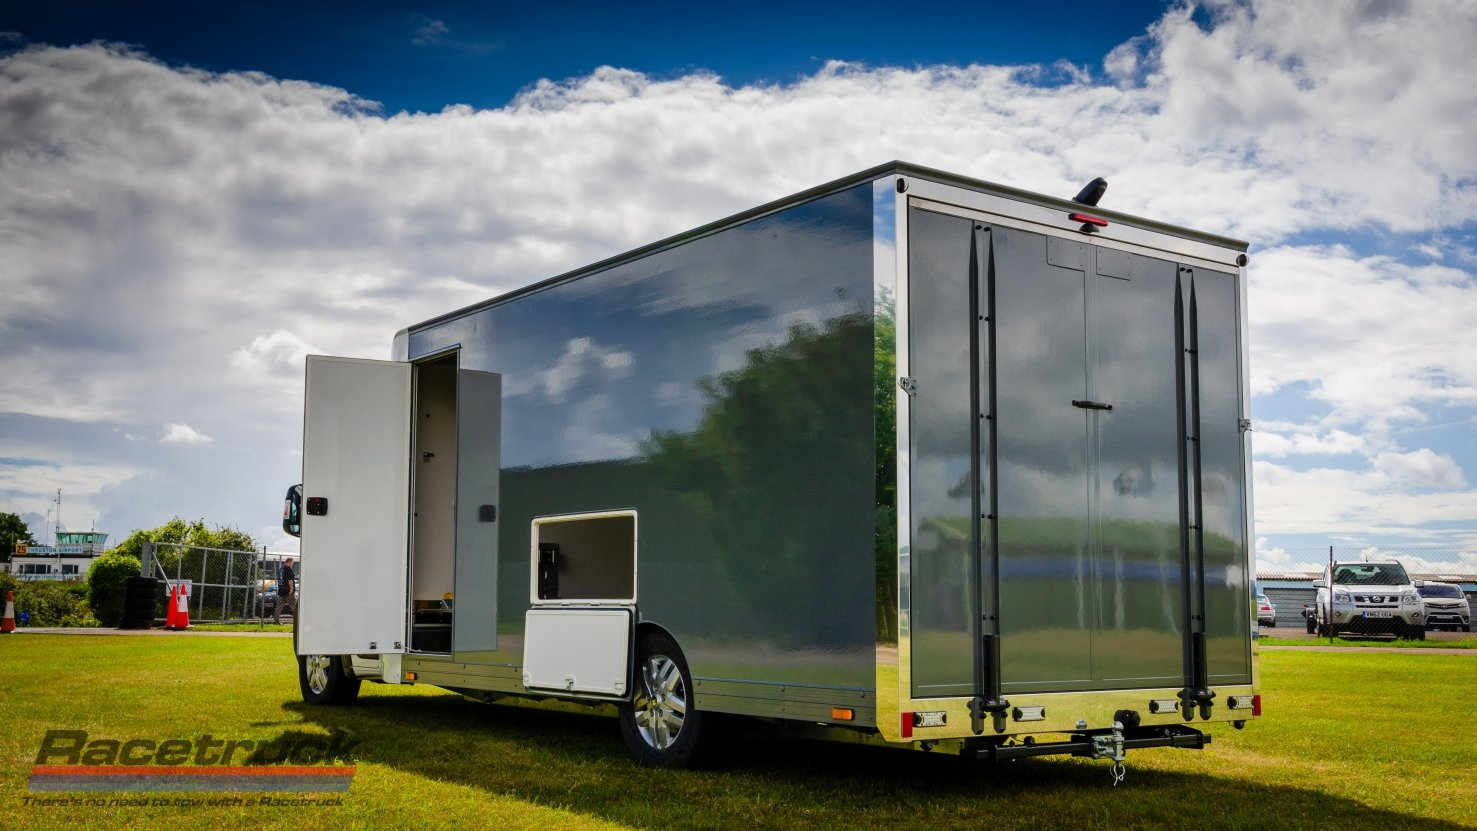 2021 Enclosed Car Transporter For Sale (picture 10 of 10)